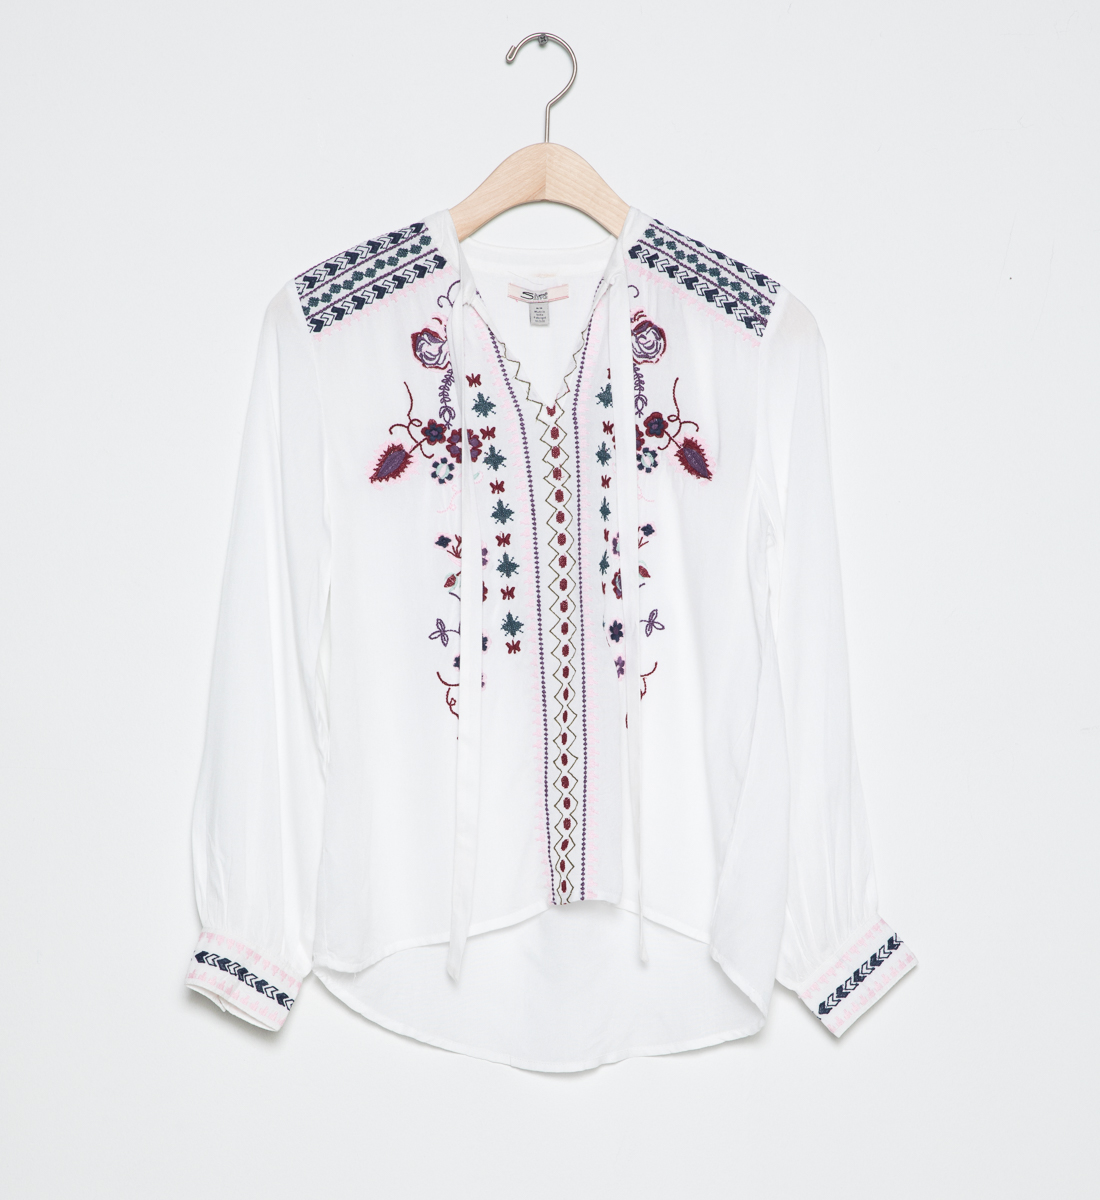 d7040111329b63 Long-Sleeve Embroidered Peasant Top (4-7) - Silver Jeans US